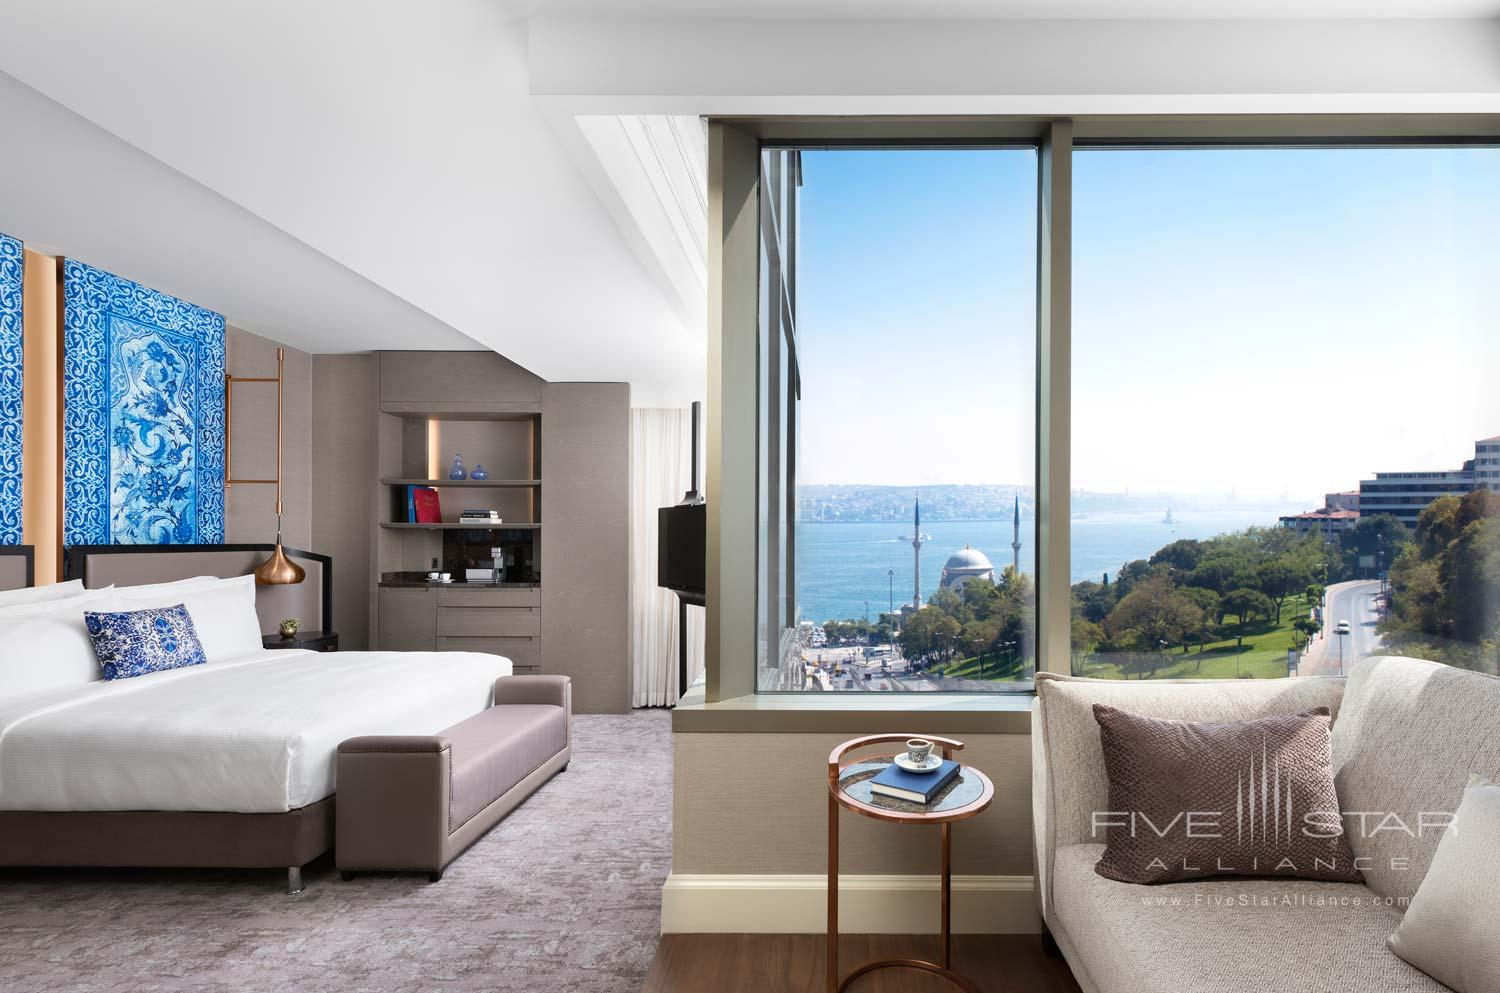 Premium Bosphorus View Room at Ritz Carlton Istanbul, Turkey